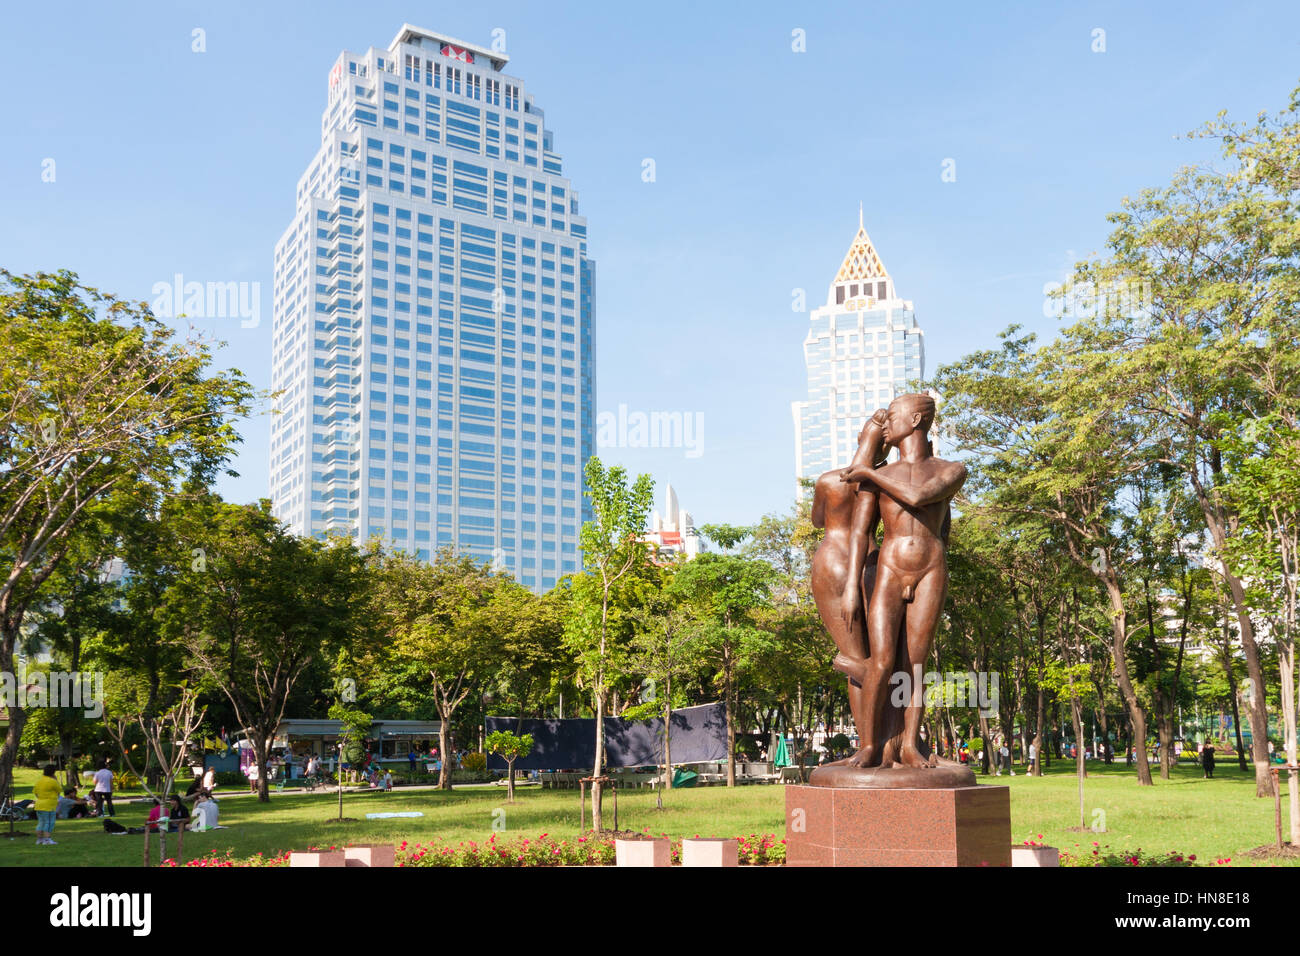 Statue and office buildings from Lumphini park, Bangkok, Thailand - Stock Image